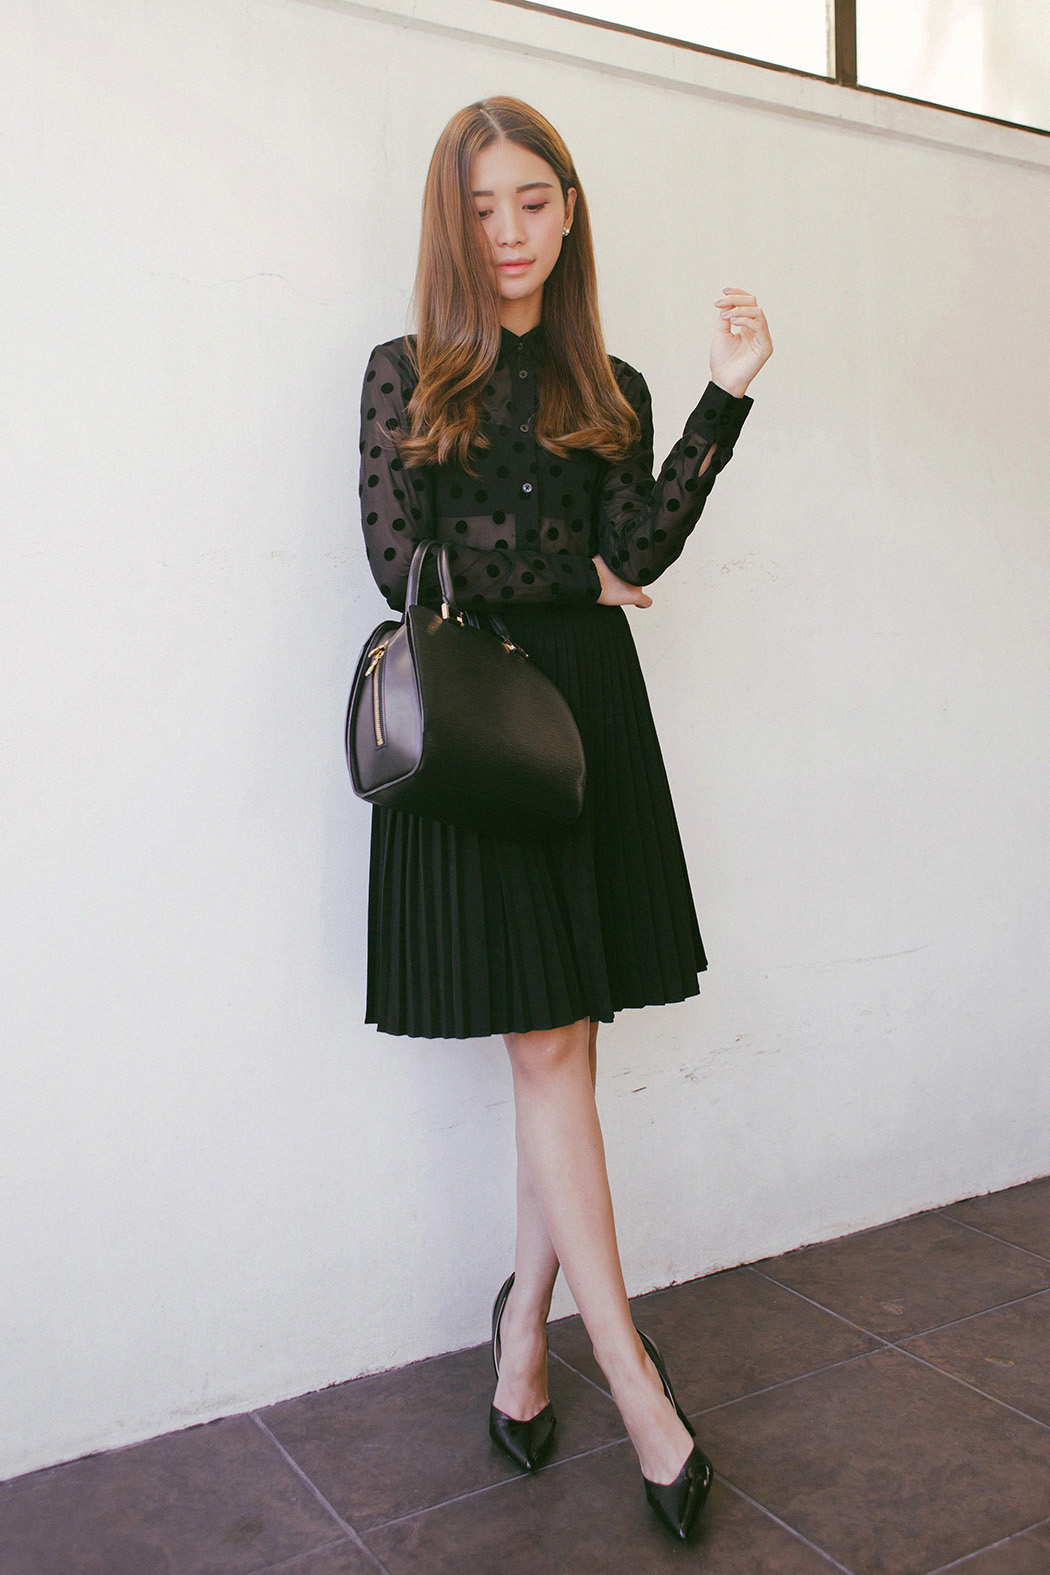 Class to night out: black and white skirt